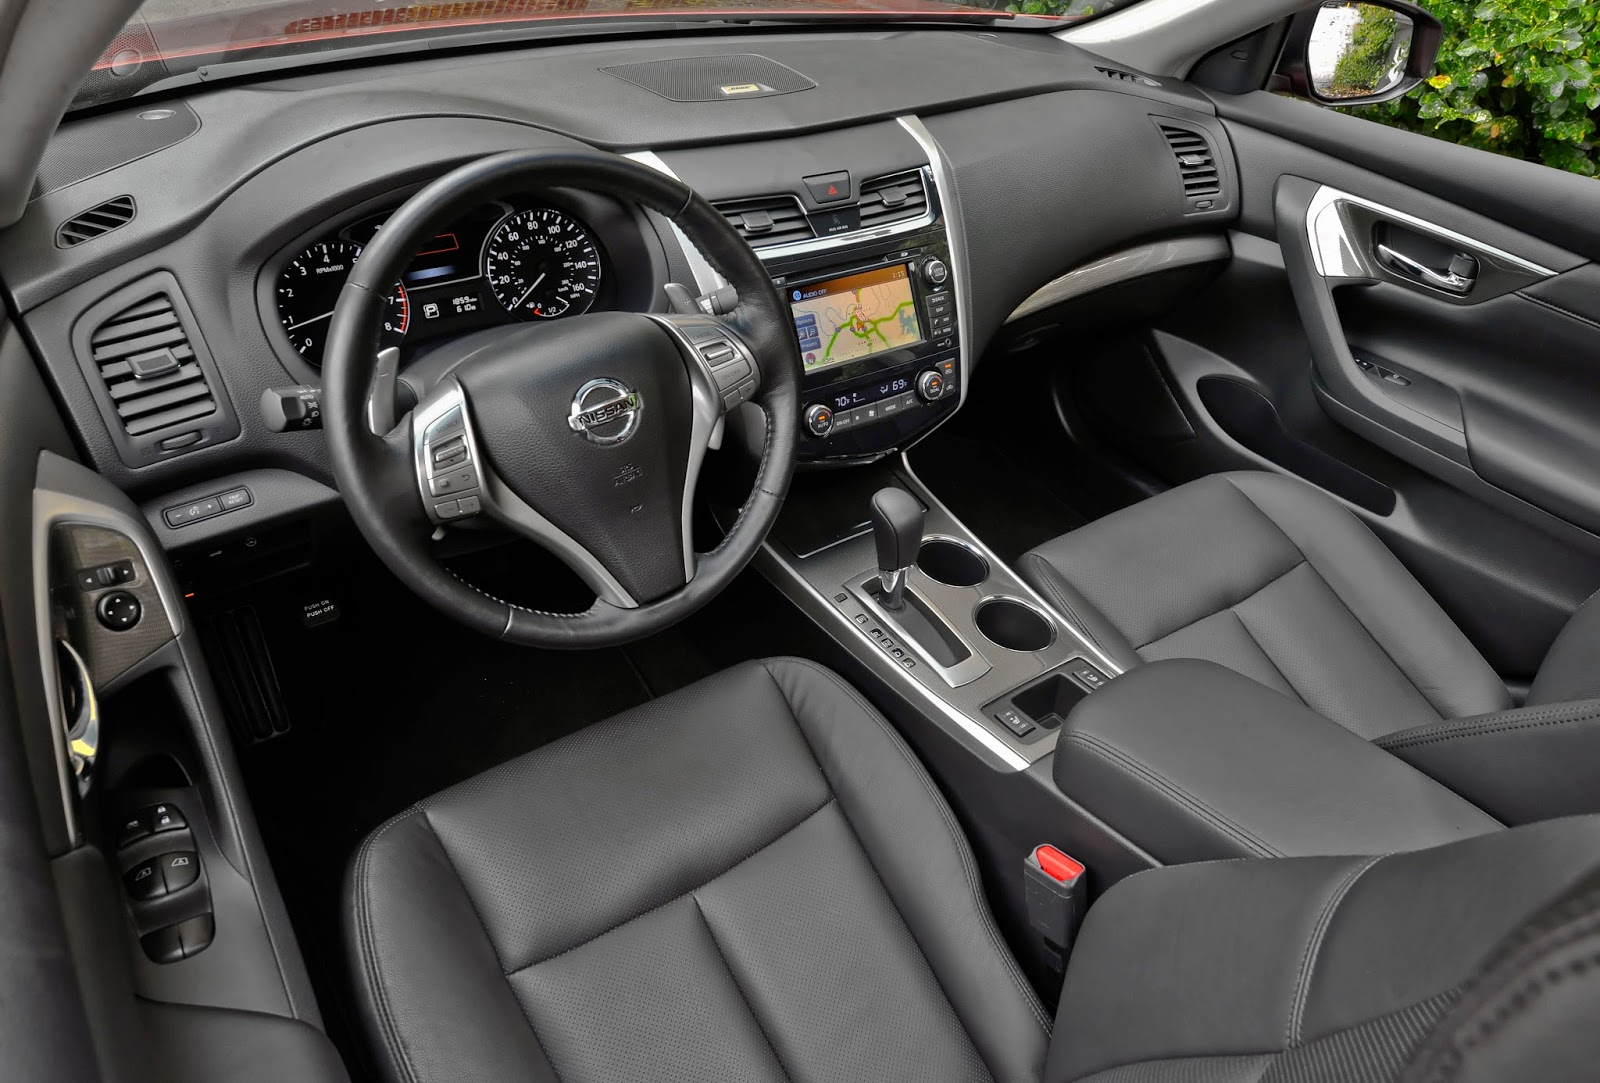 2001 nissan altima leather interior images hd cars wallpaper 2002 nissan altima black interior image collections hd cars 2014 nissan altima information and photos zombiedrive vanachro Images